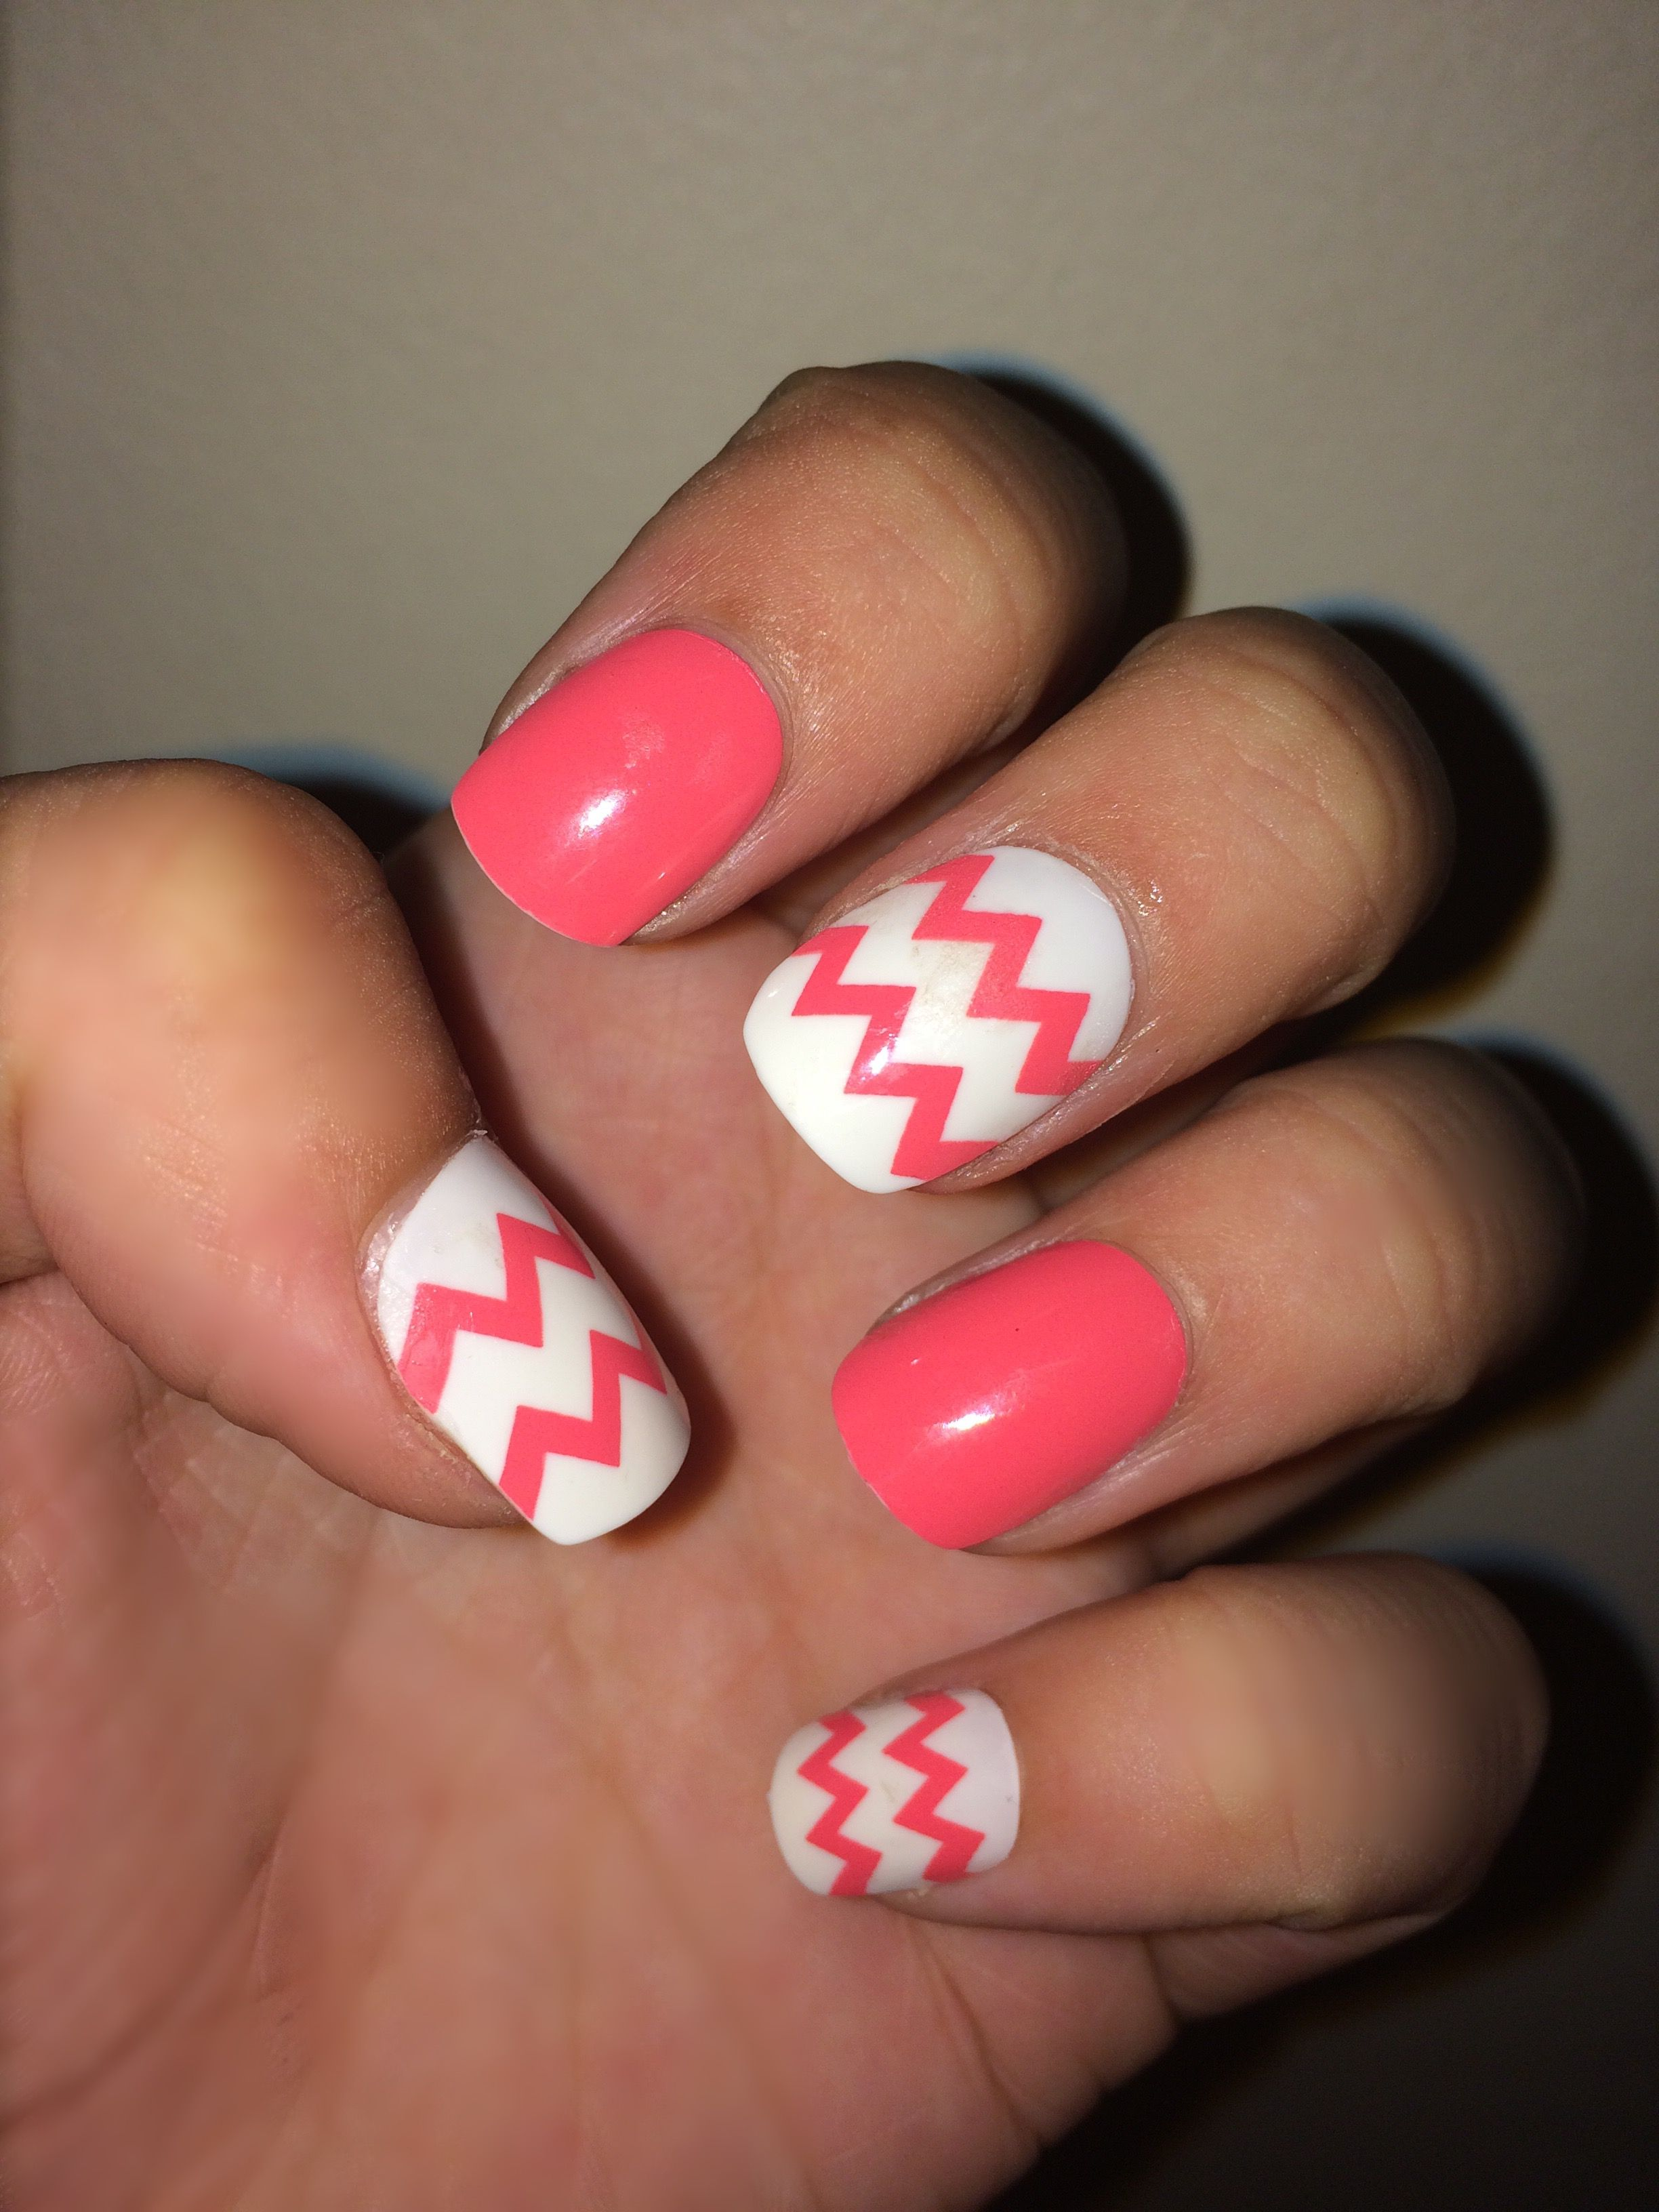 Dollar store fake nails- I would actually suggest the $8 Walmart ...